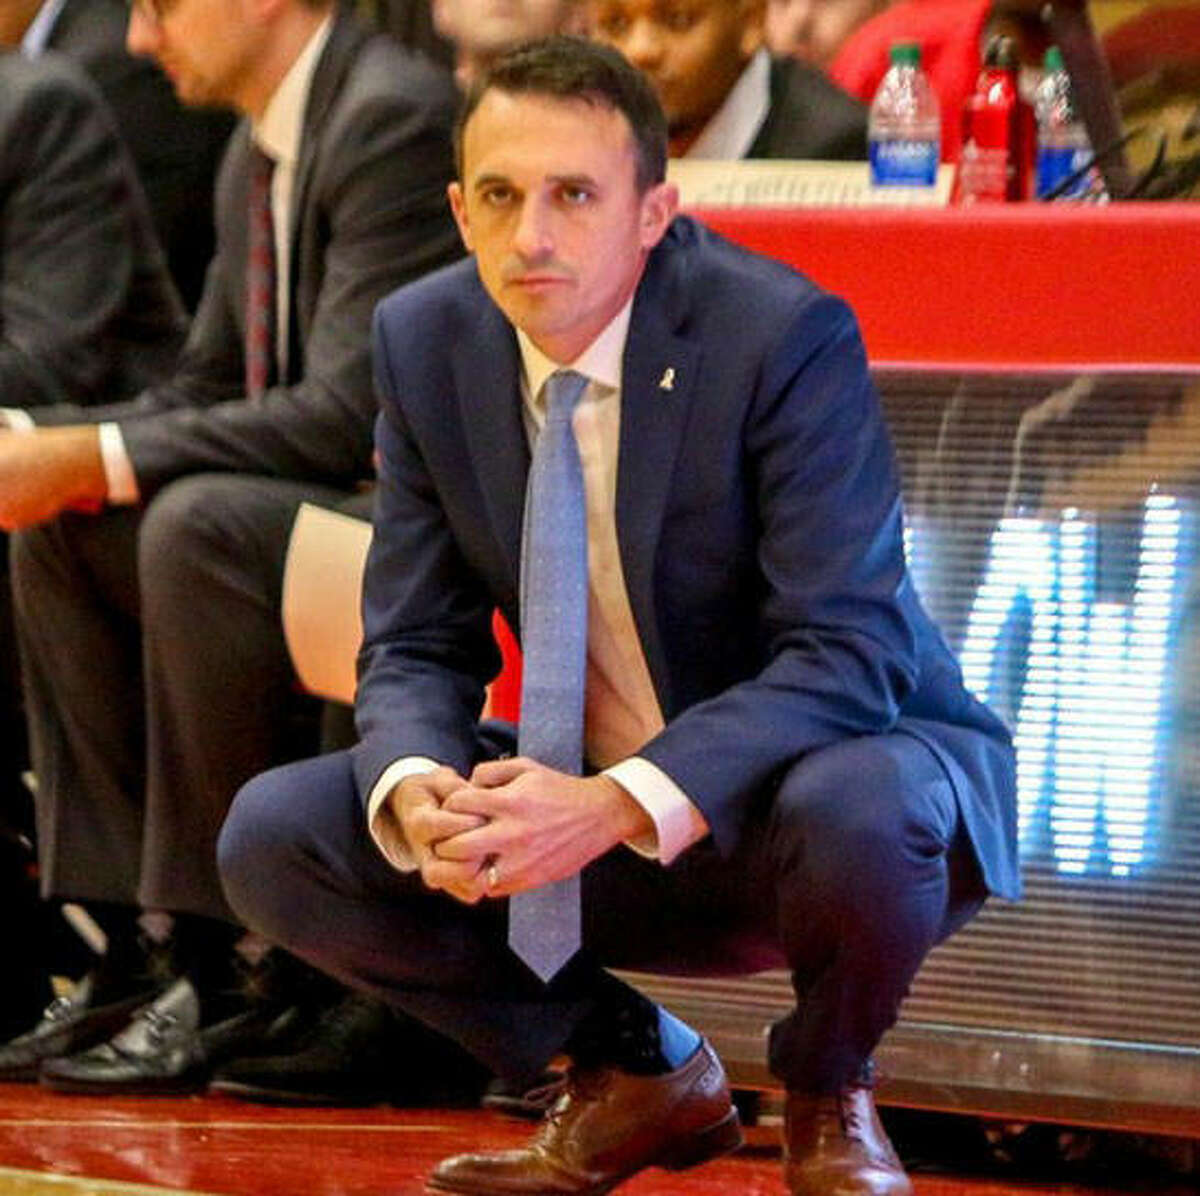 SIUE men's basketball coach Brian Barone watches intently from the sideline during a game last season.